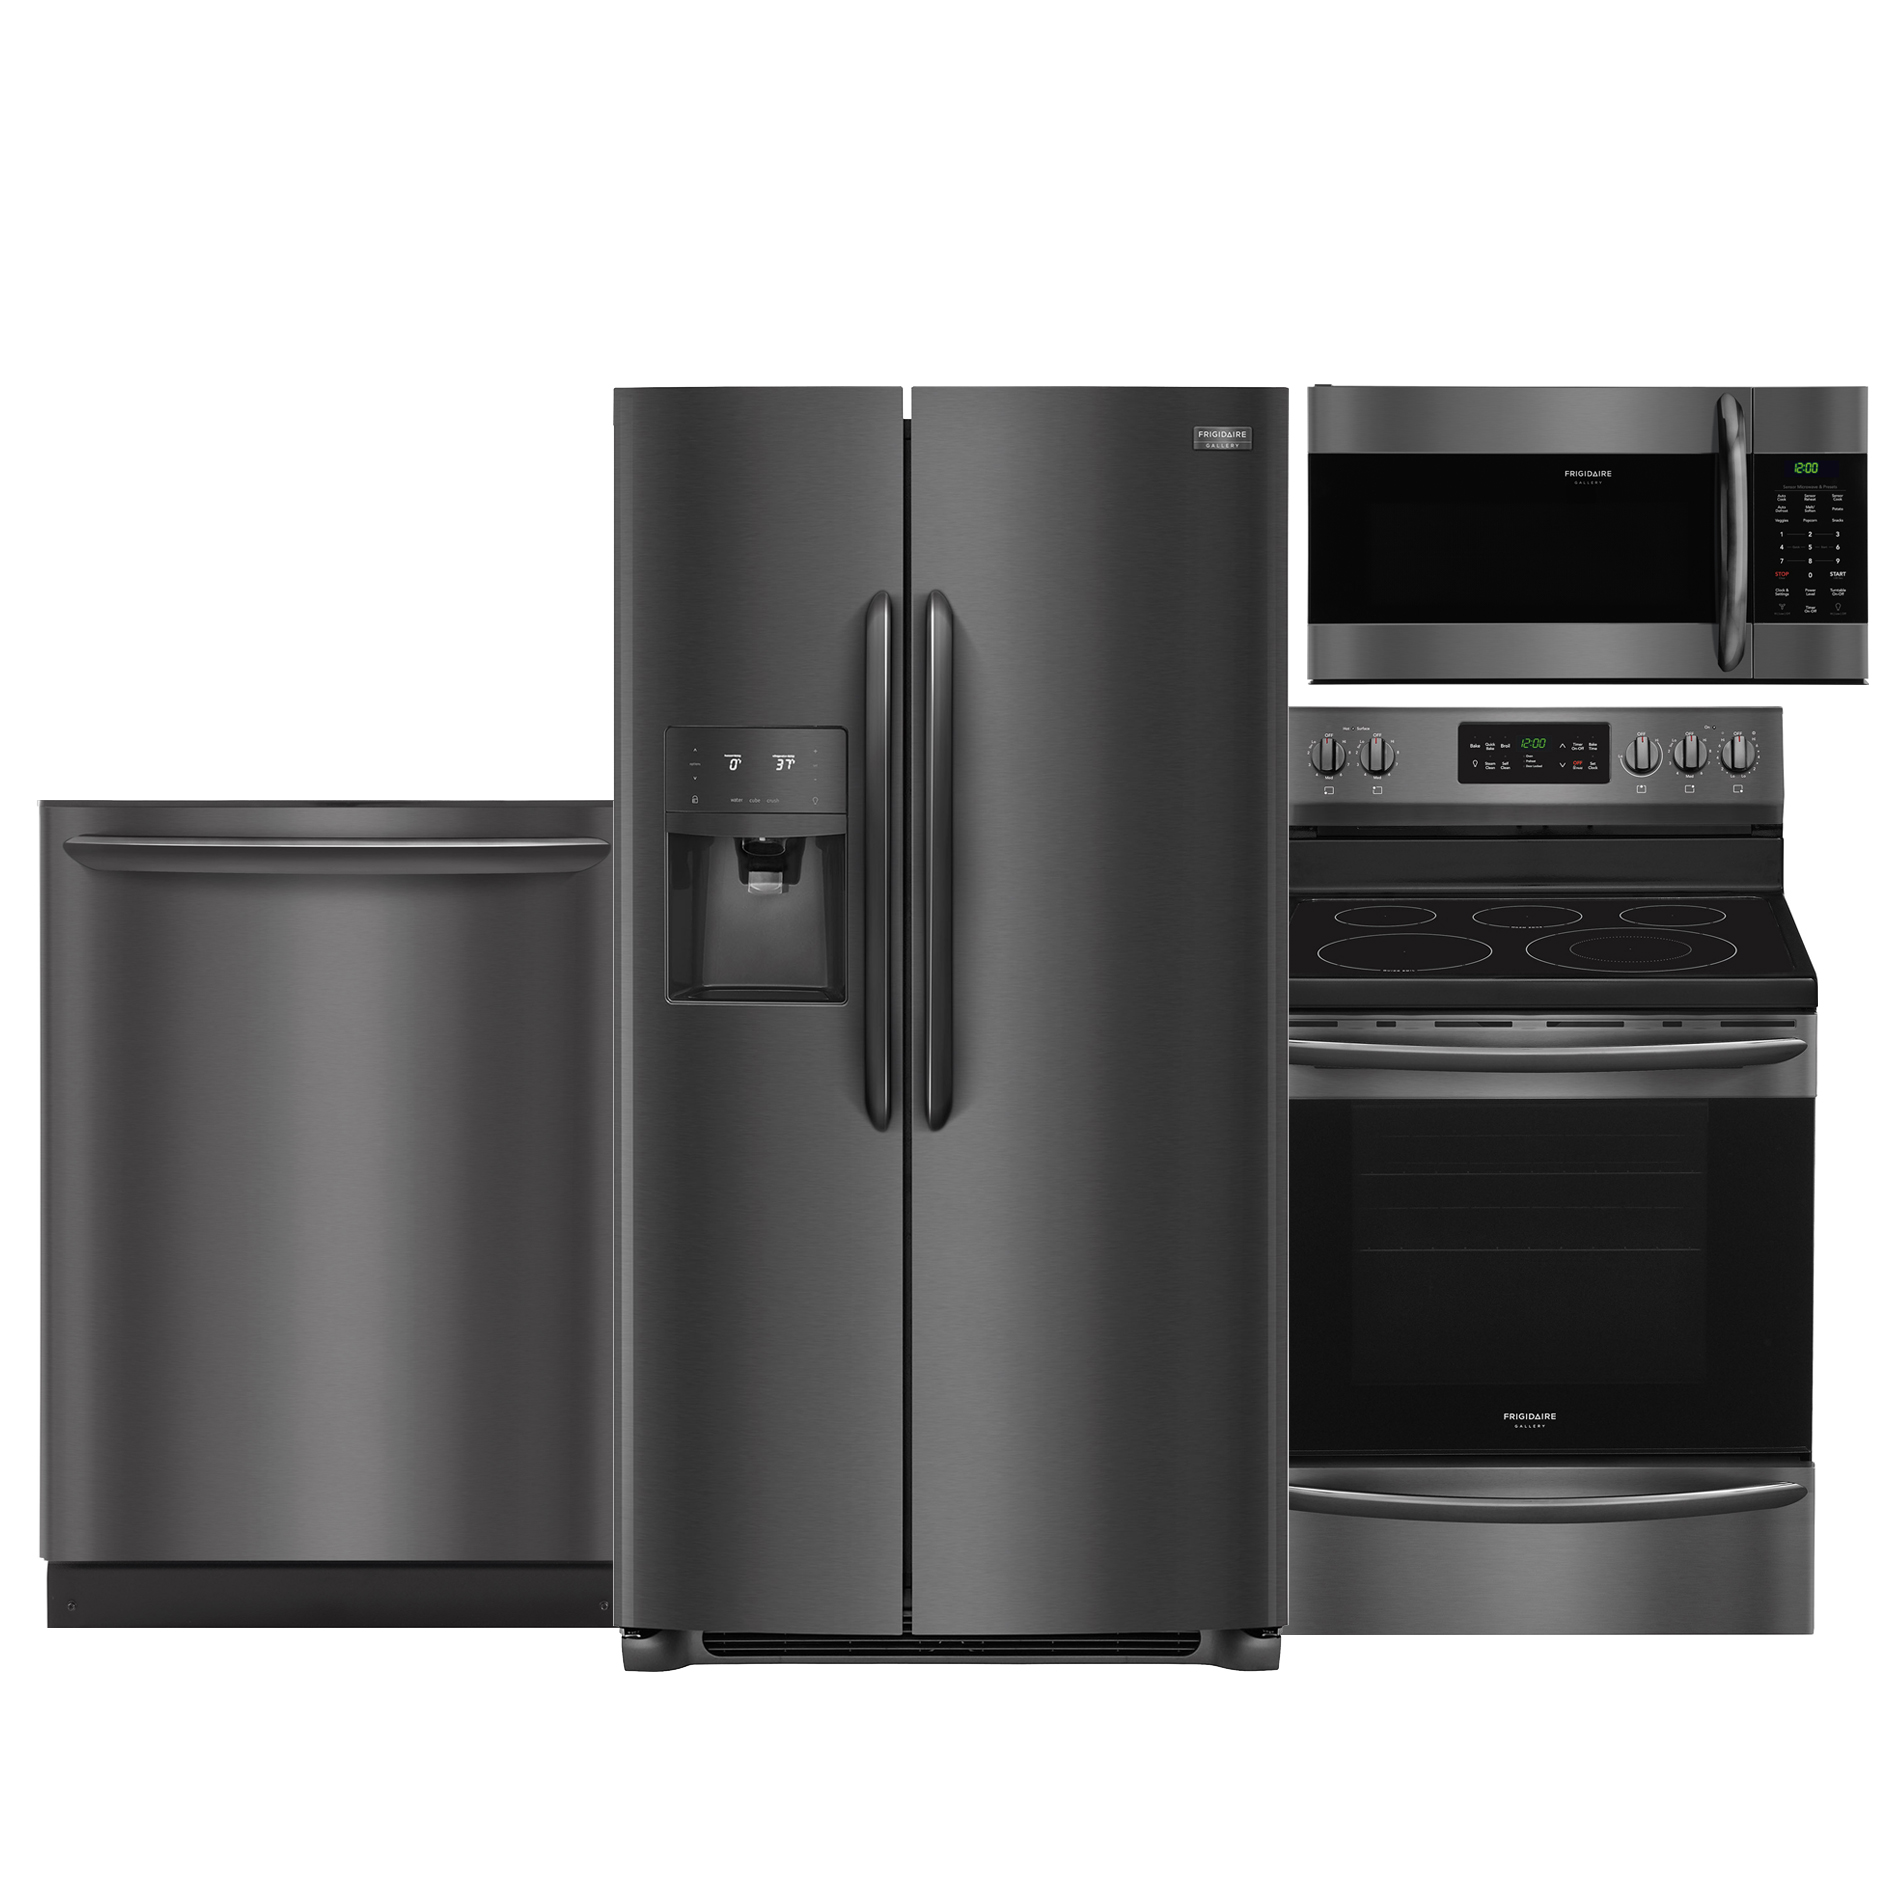 4 piece stainless steel kitchen package laminate or engineered wood flooring for shop appliance packages with sears suites at frigidaire gallery suite black